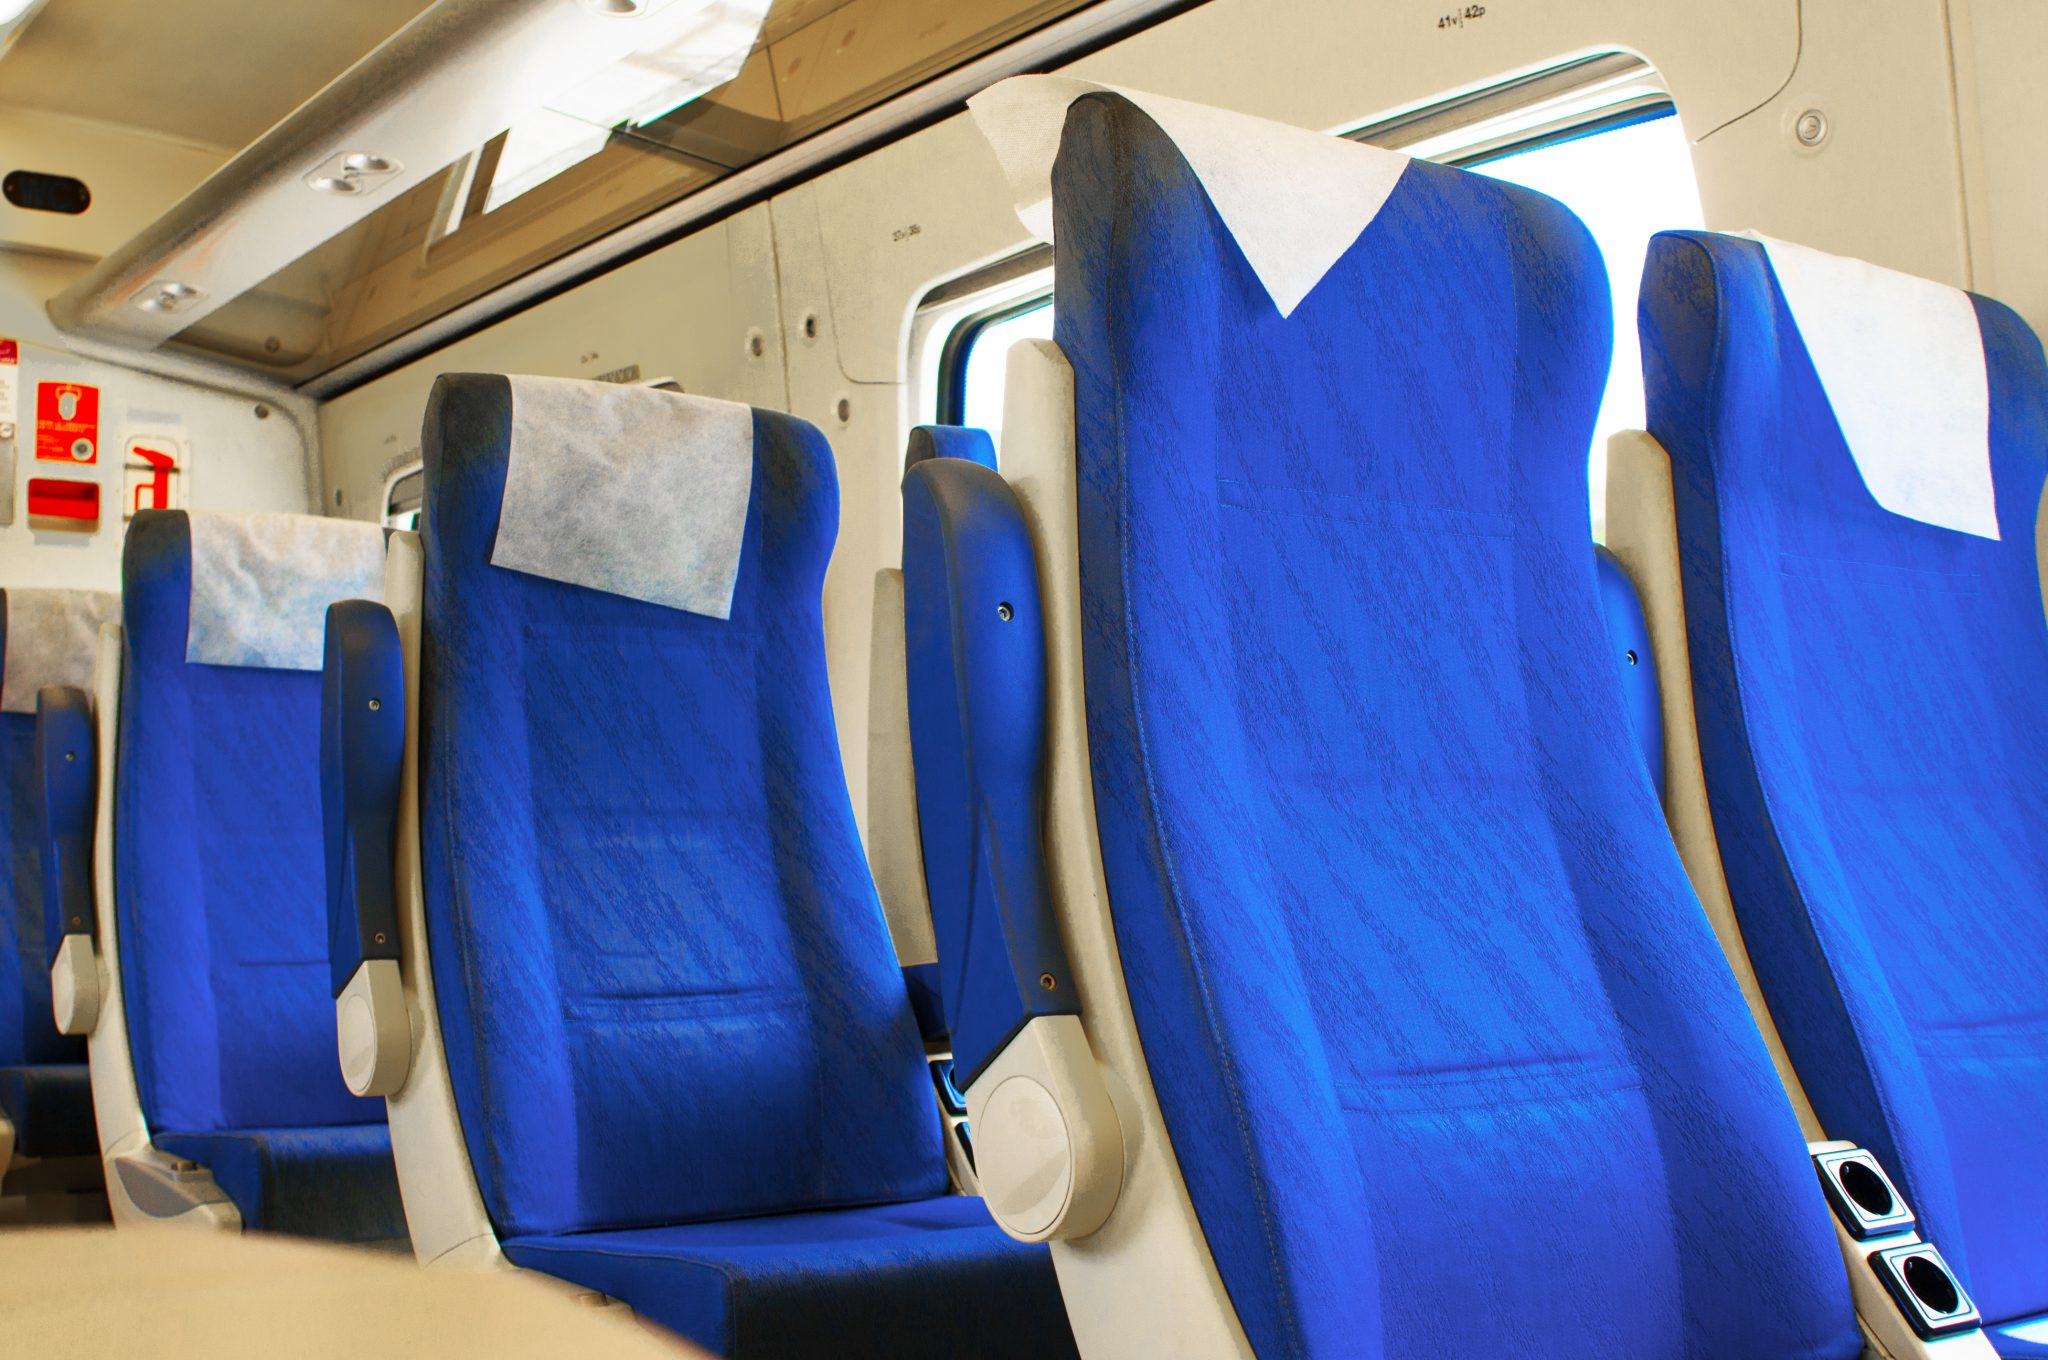 An interior view of a modern high speed train